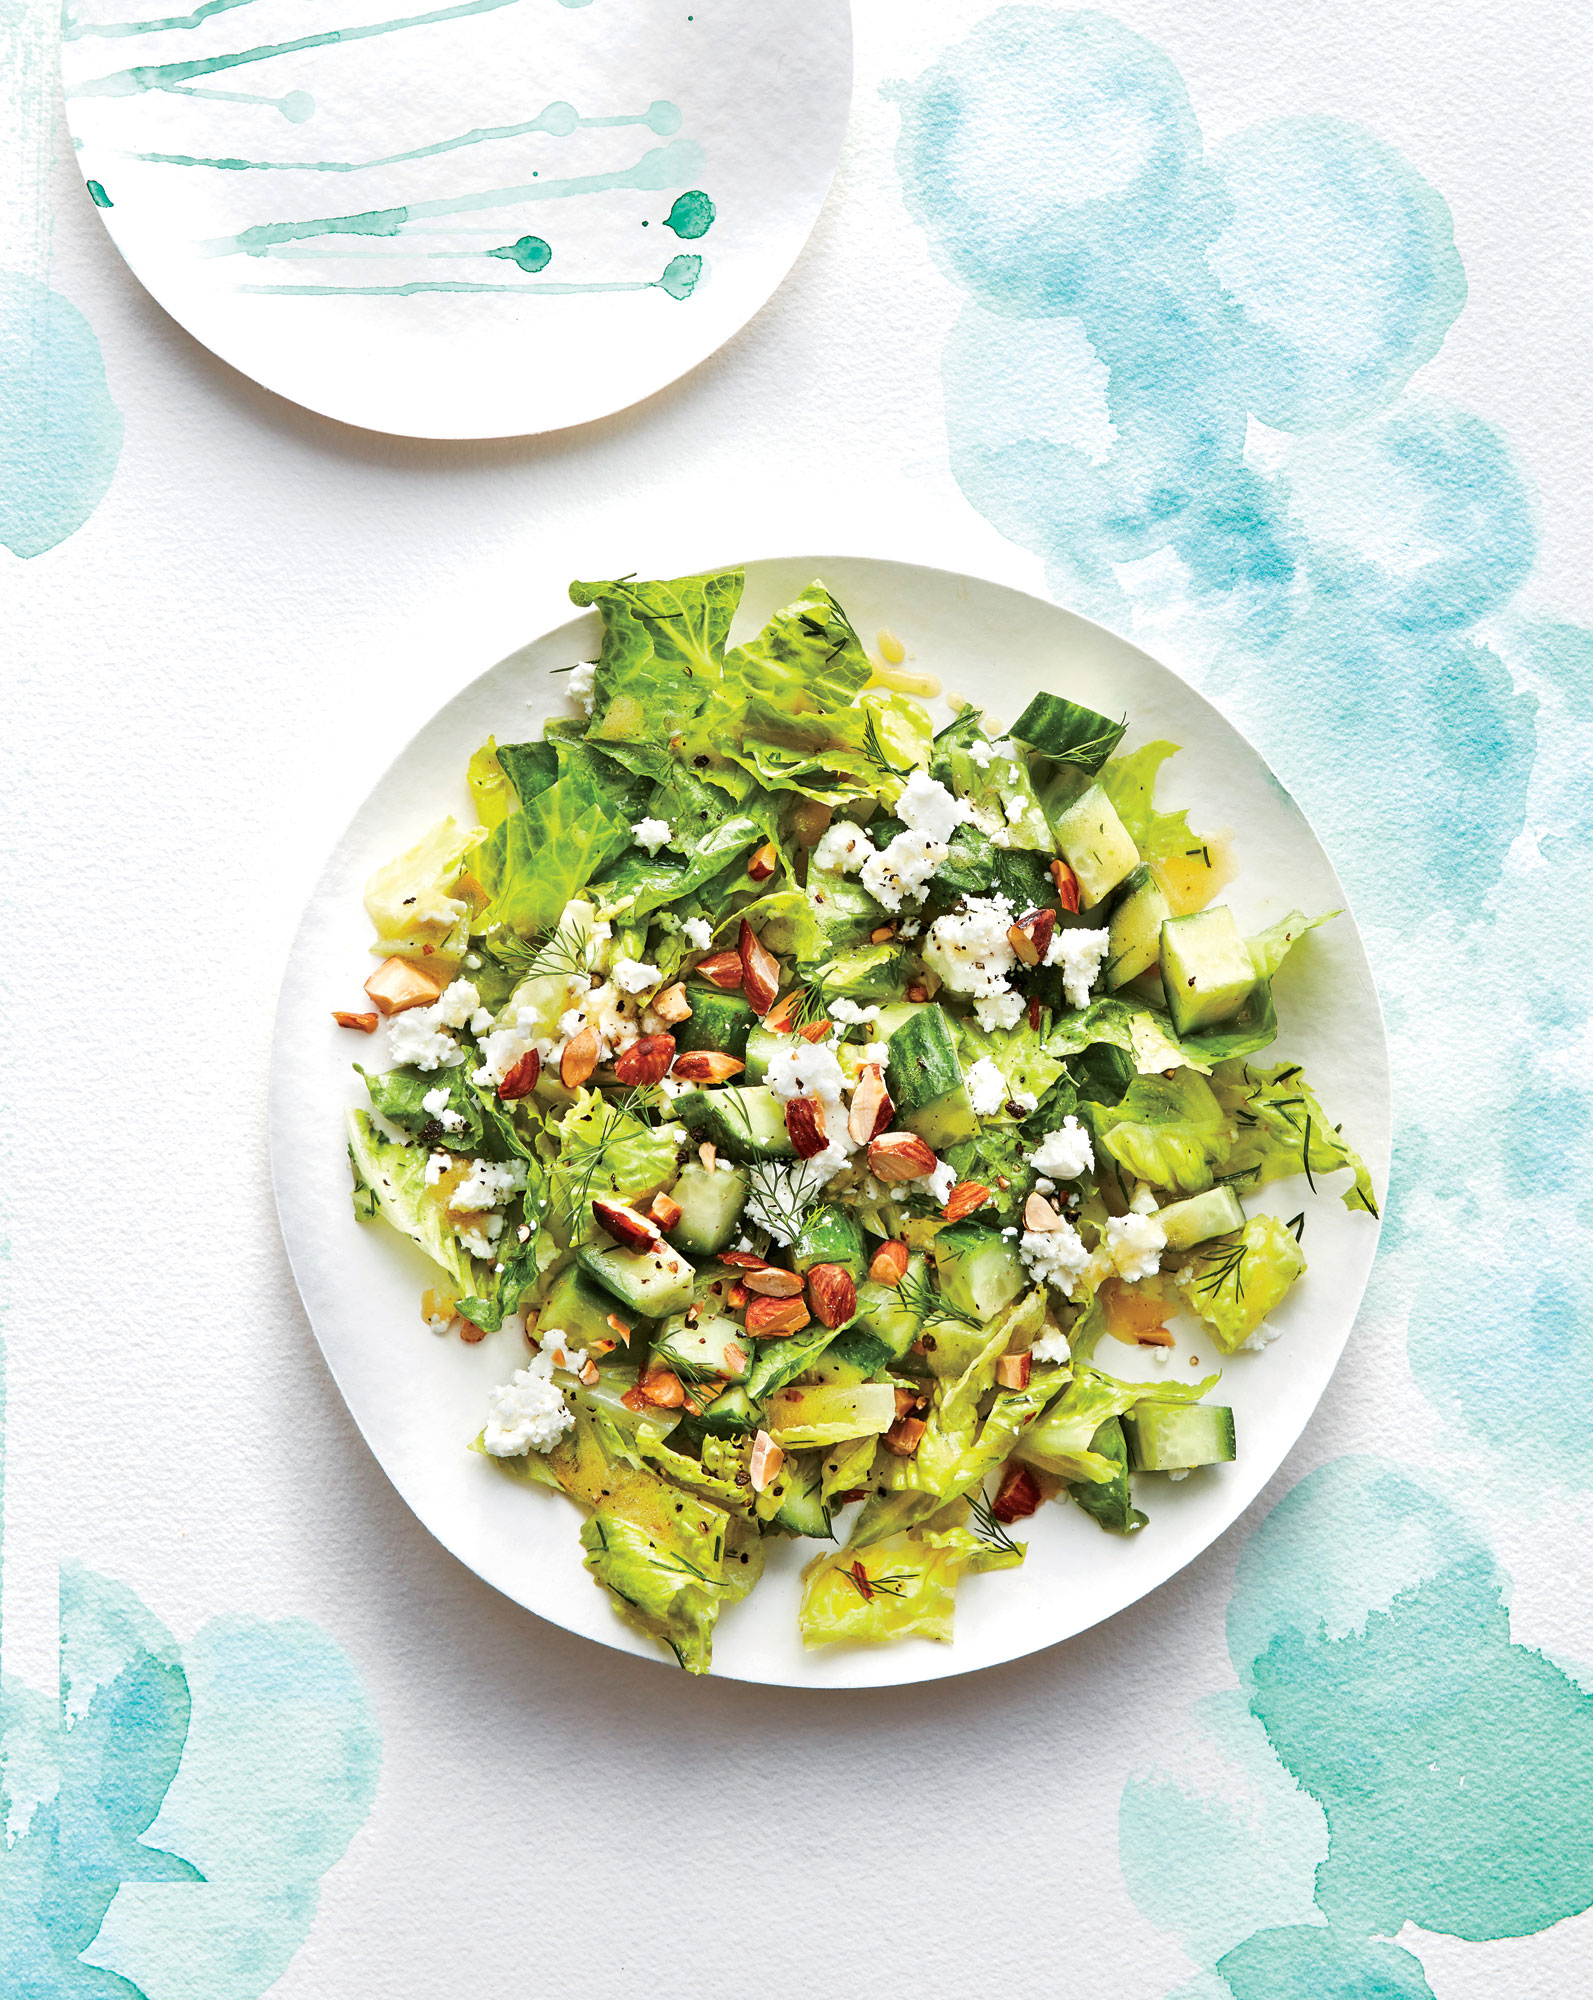 Vegetable and Green Salad Recipes - Cooking Light